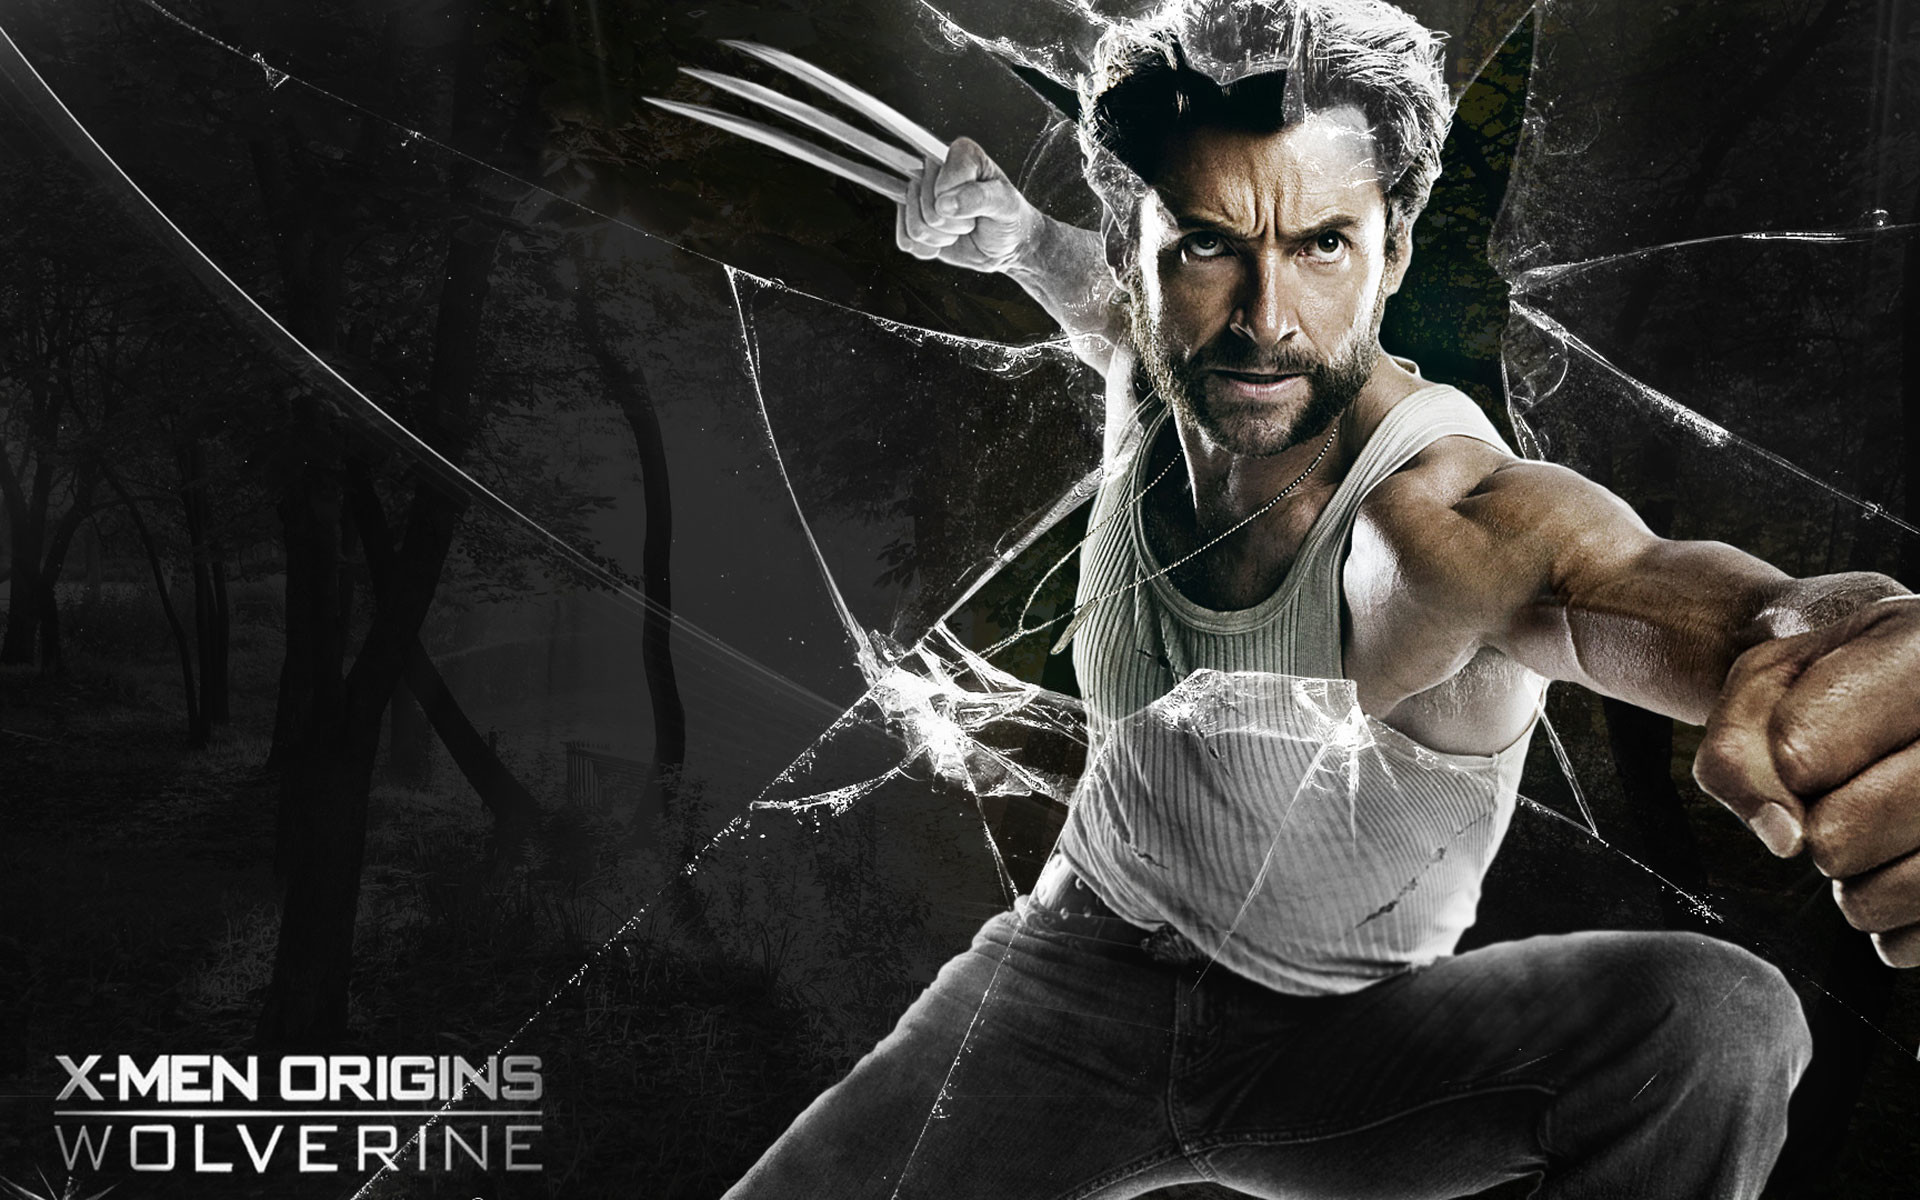 1920x1080 Wolverine Artwork X Men Wallpapers HD Desktop And Mobile Backgrounds